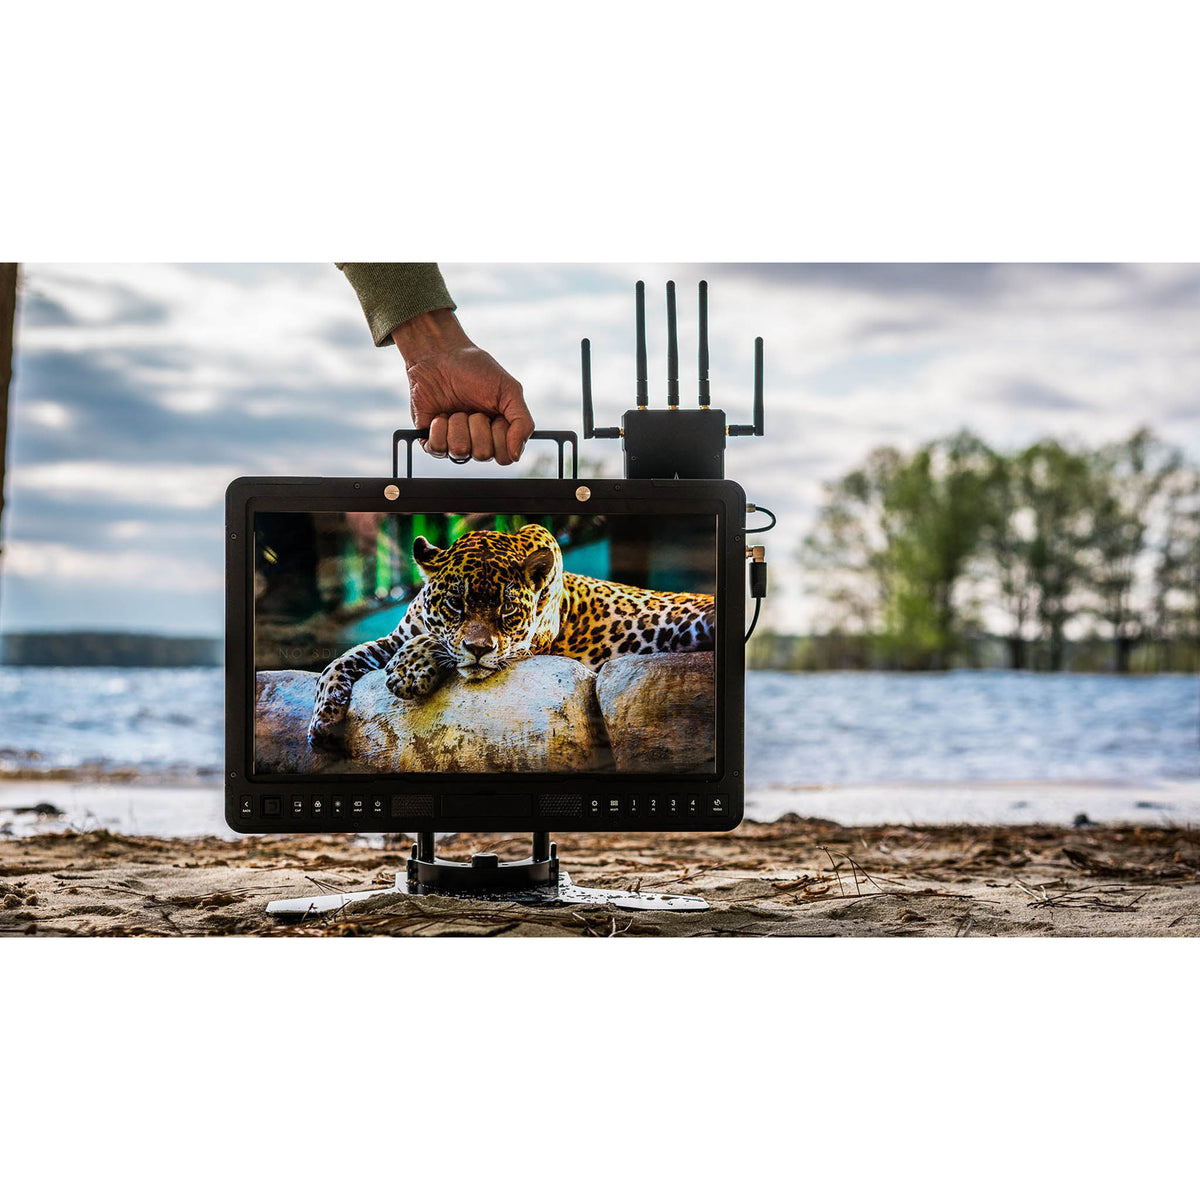 "SmallHD 2403 24"" HDR Production / Director's Monitor"